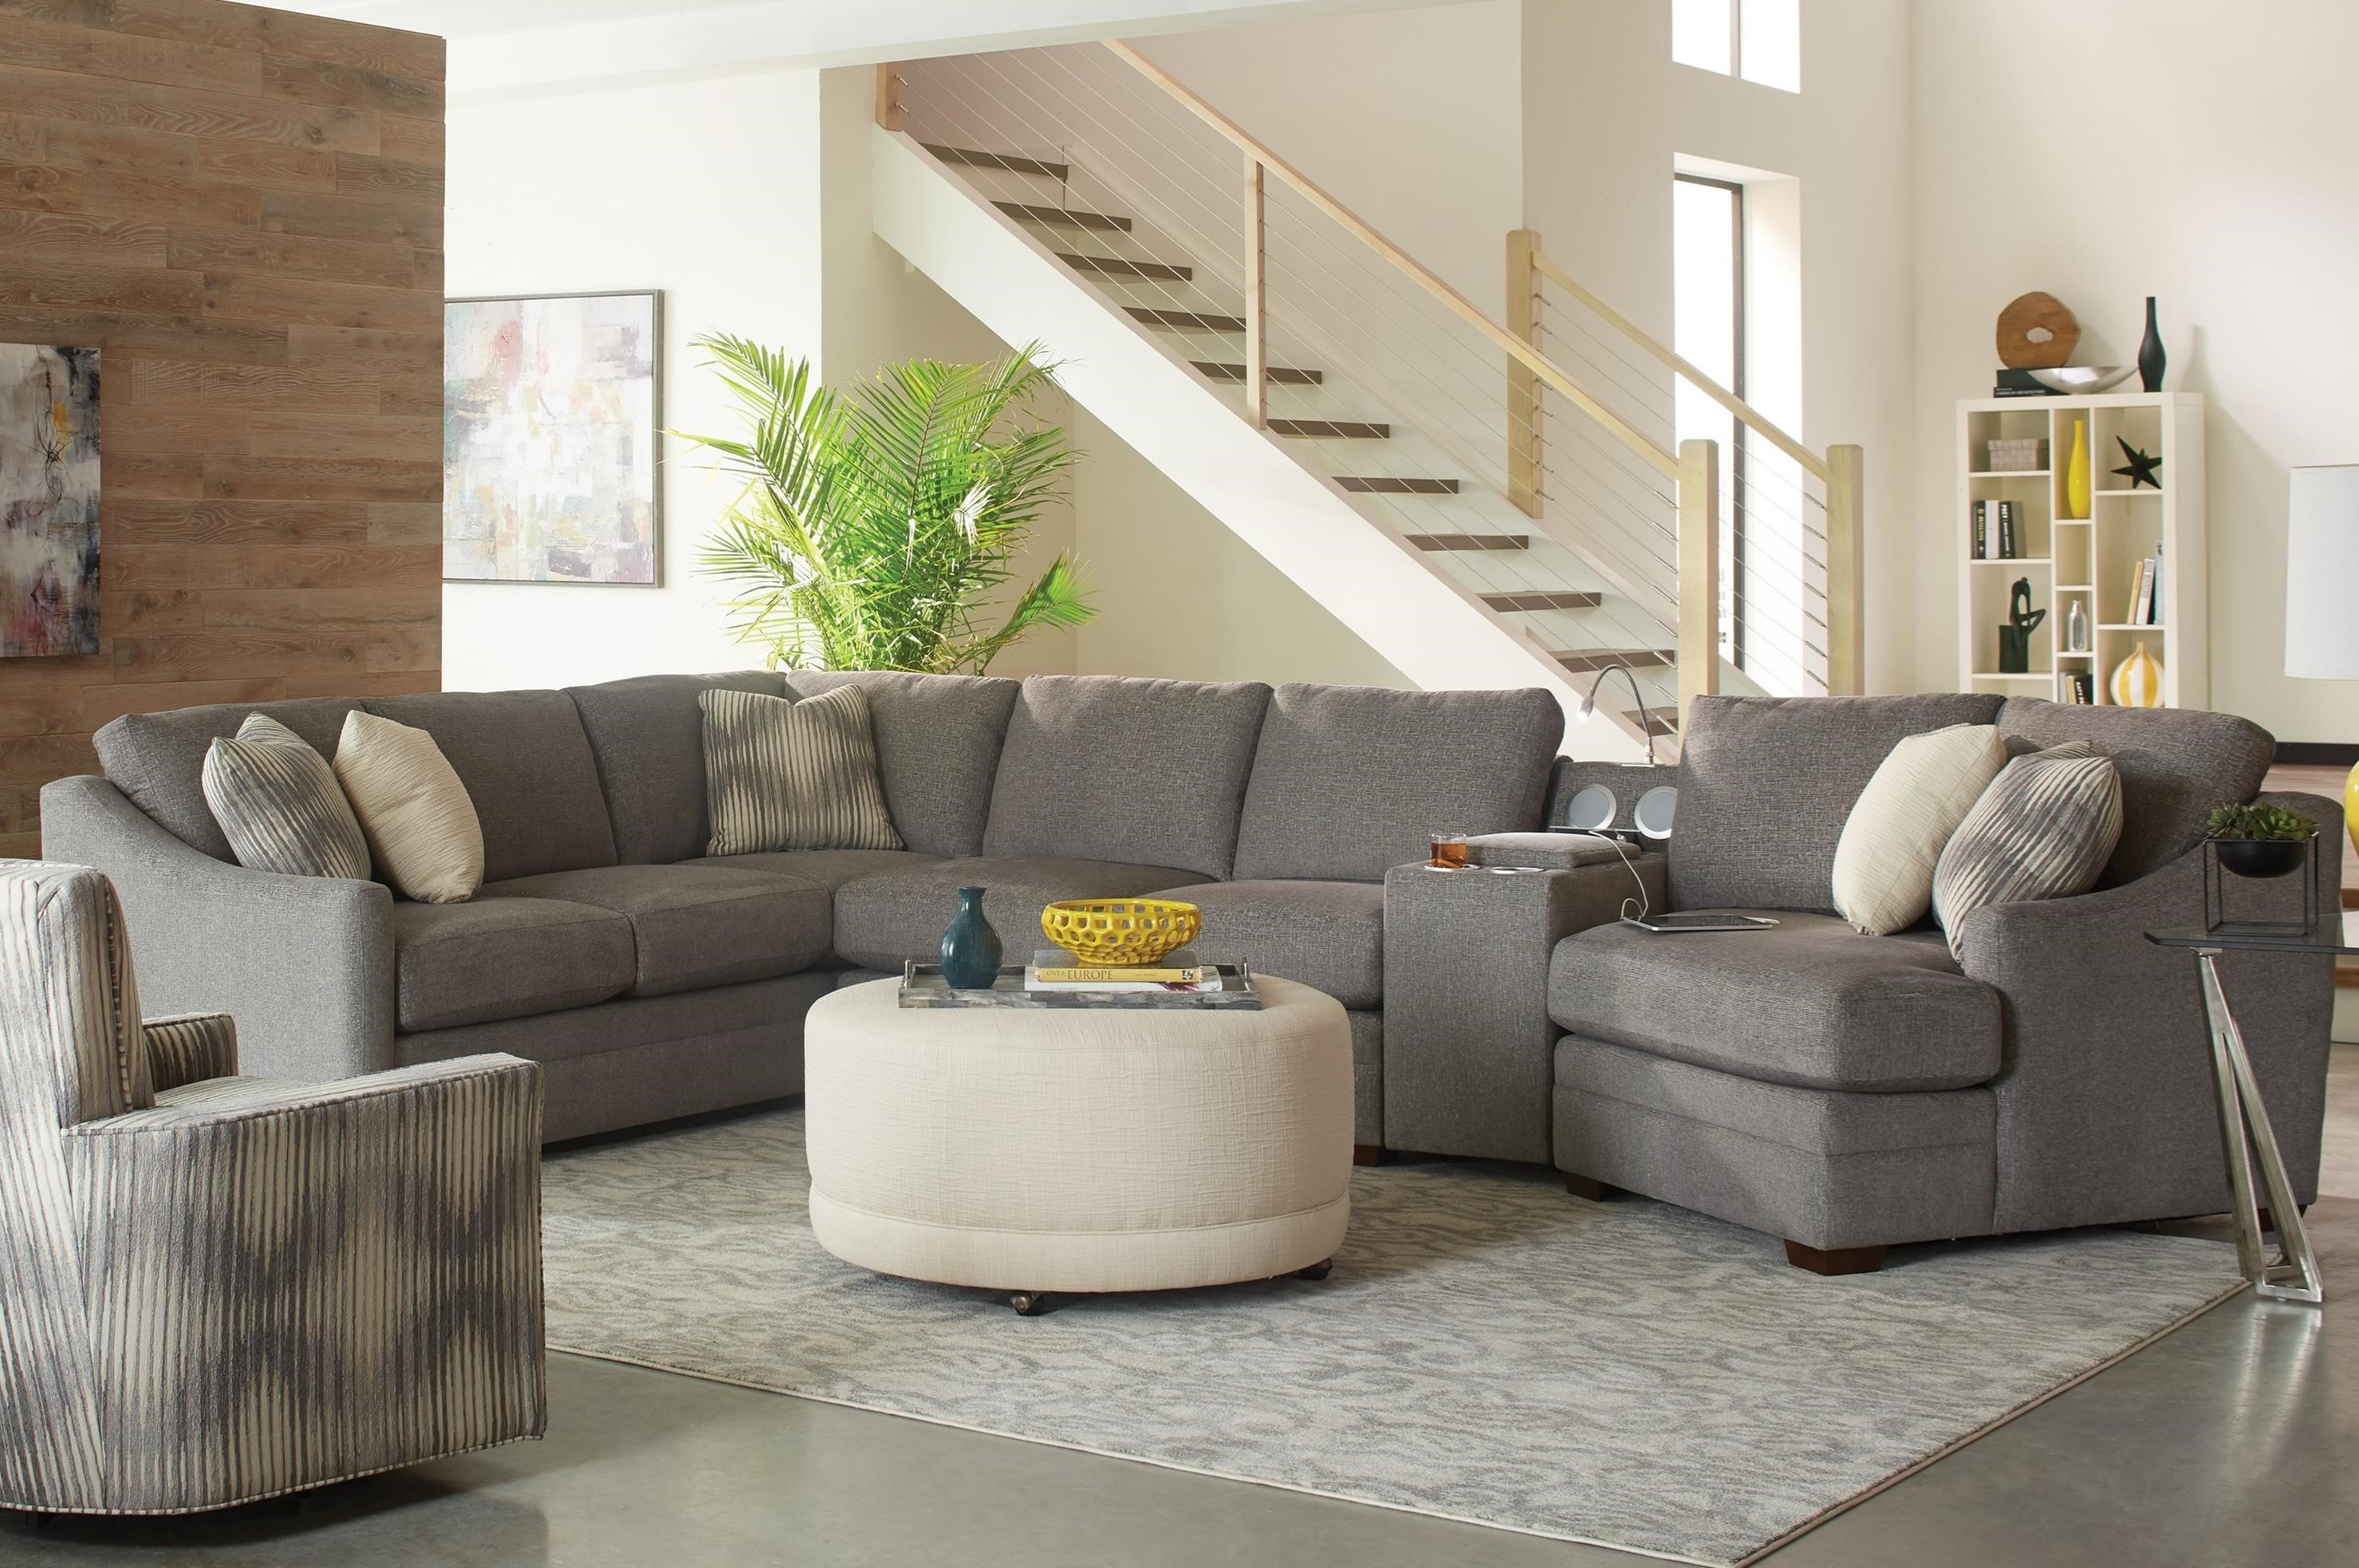 F9 Custom Collection 4 pc Sectional Sofa w/ Power Console by Craftmaster at Goods Furniture